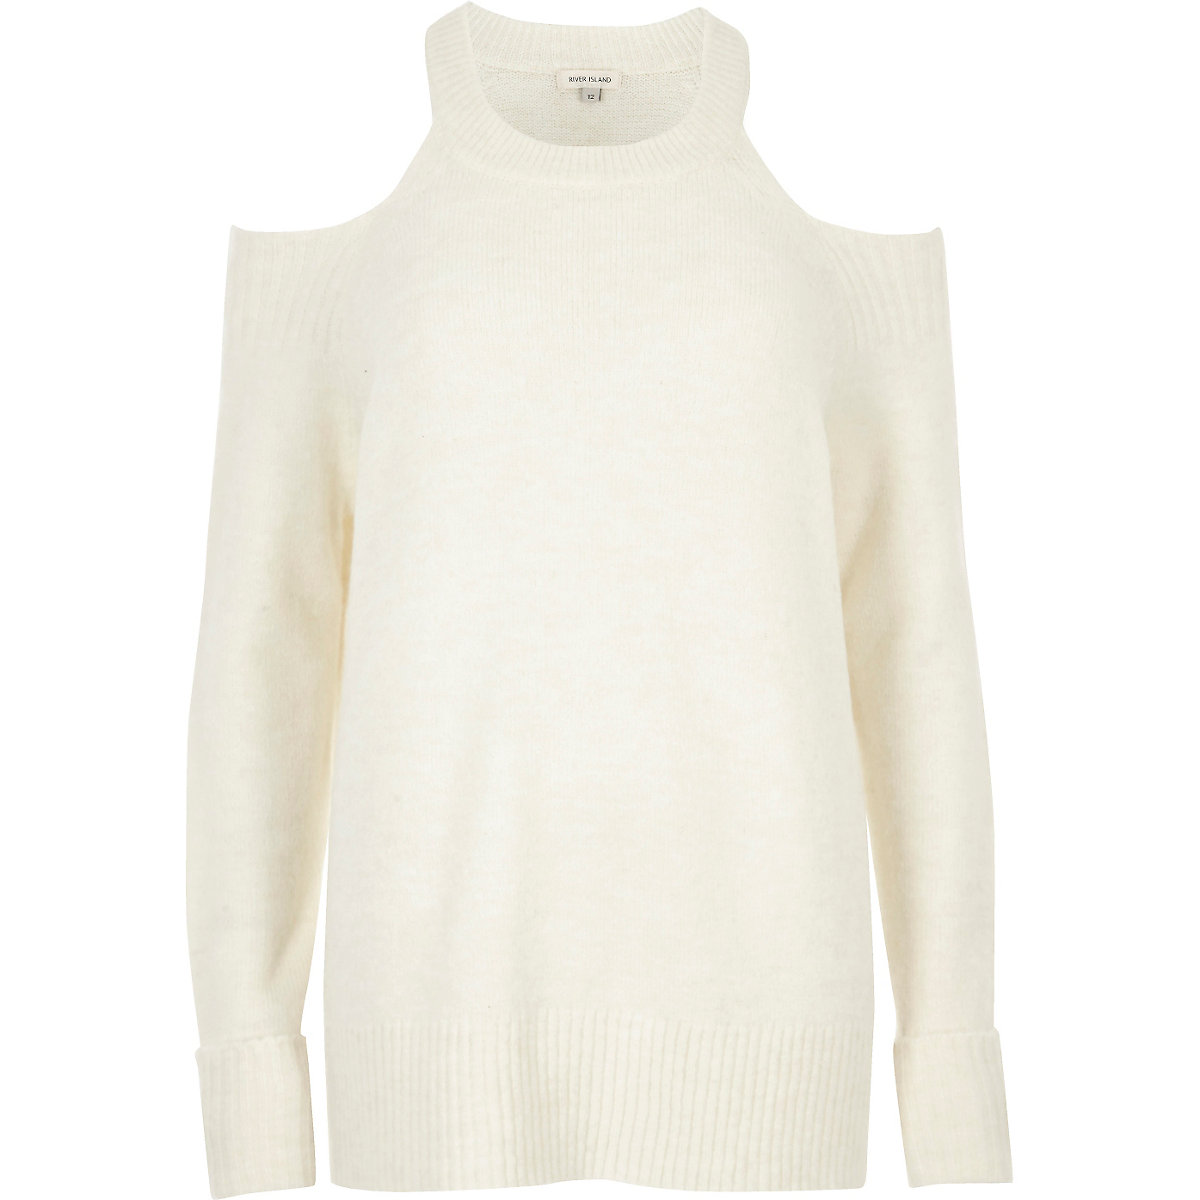 23e4f22f4a1 Cream knit cold shoulder jumper - Knit Tops - Knitwear - women